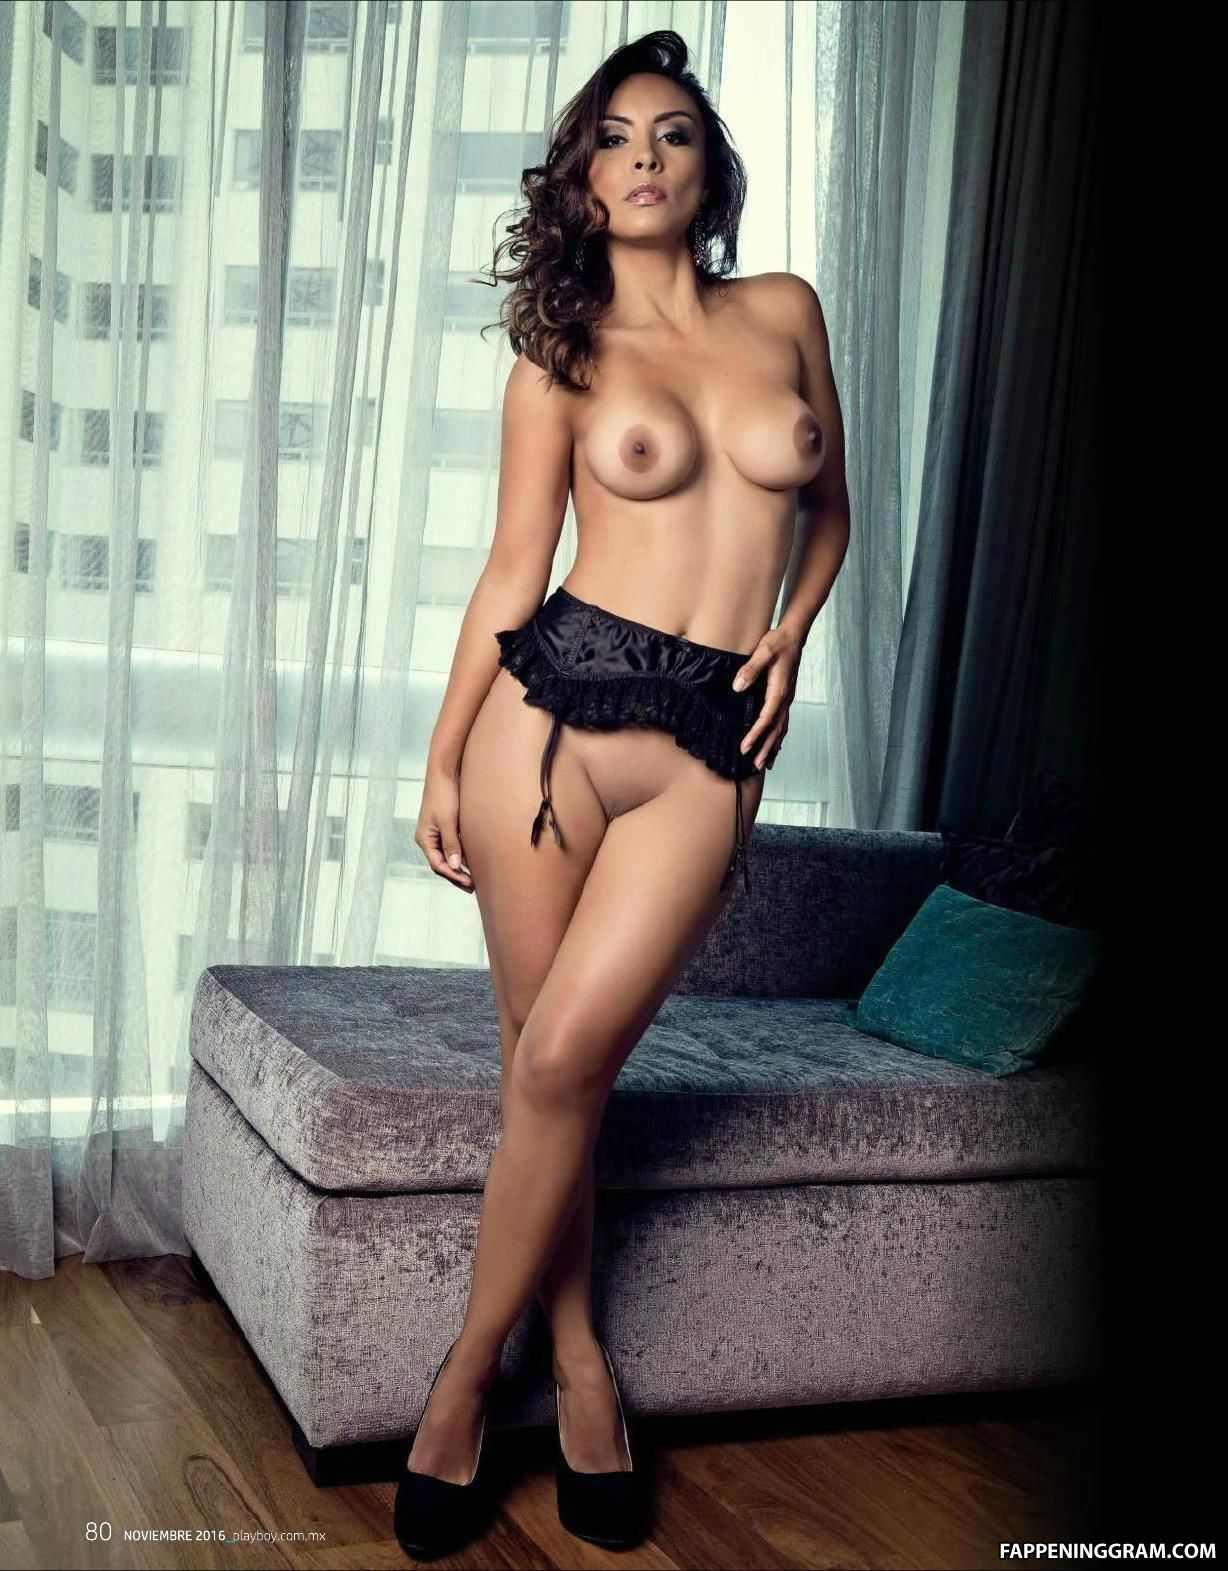 Nathalia Rodrigues Nude Will Make You Believe In God